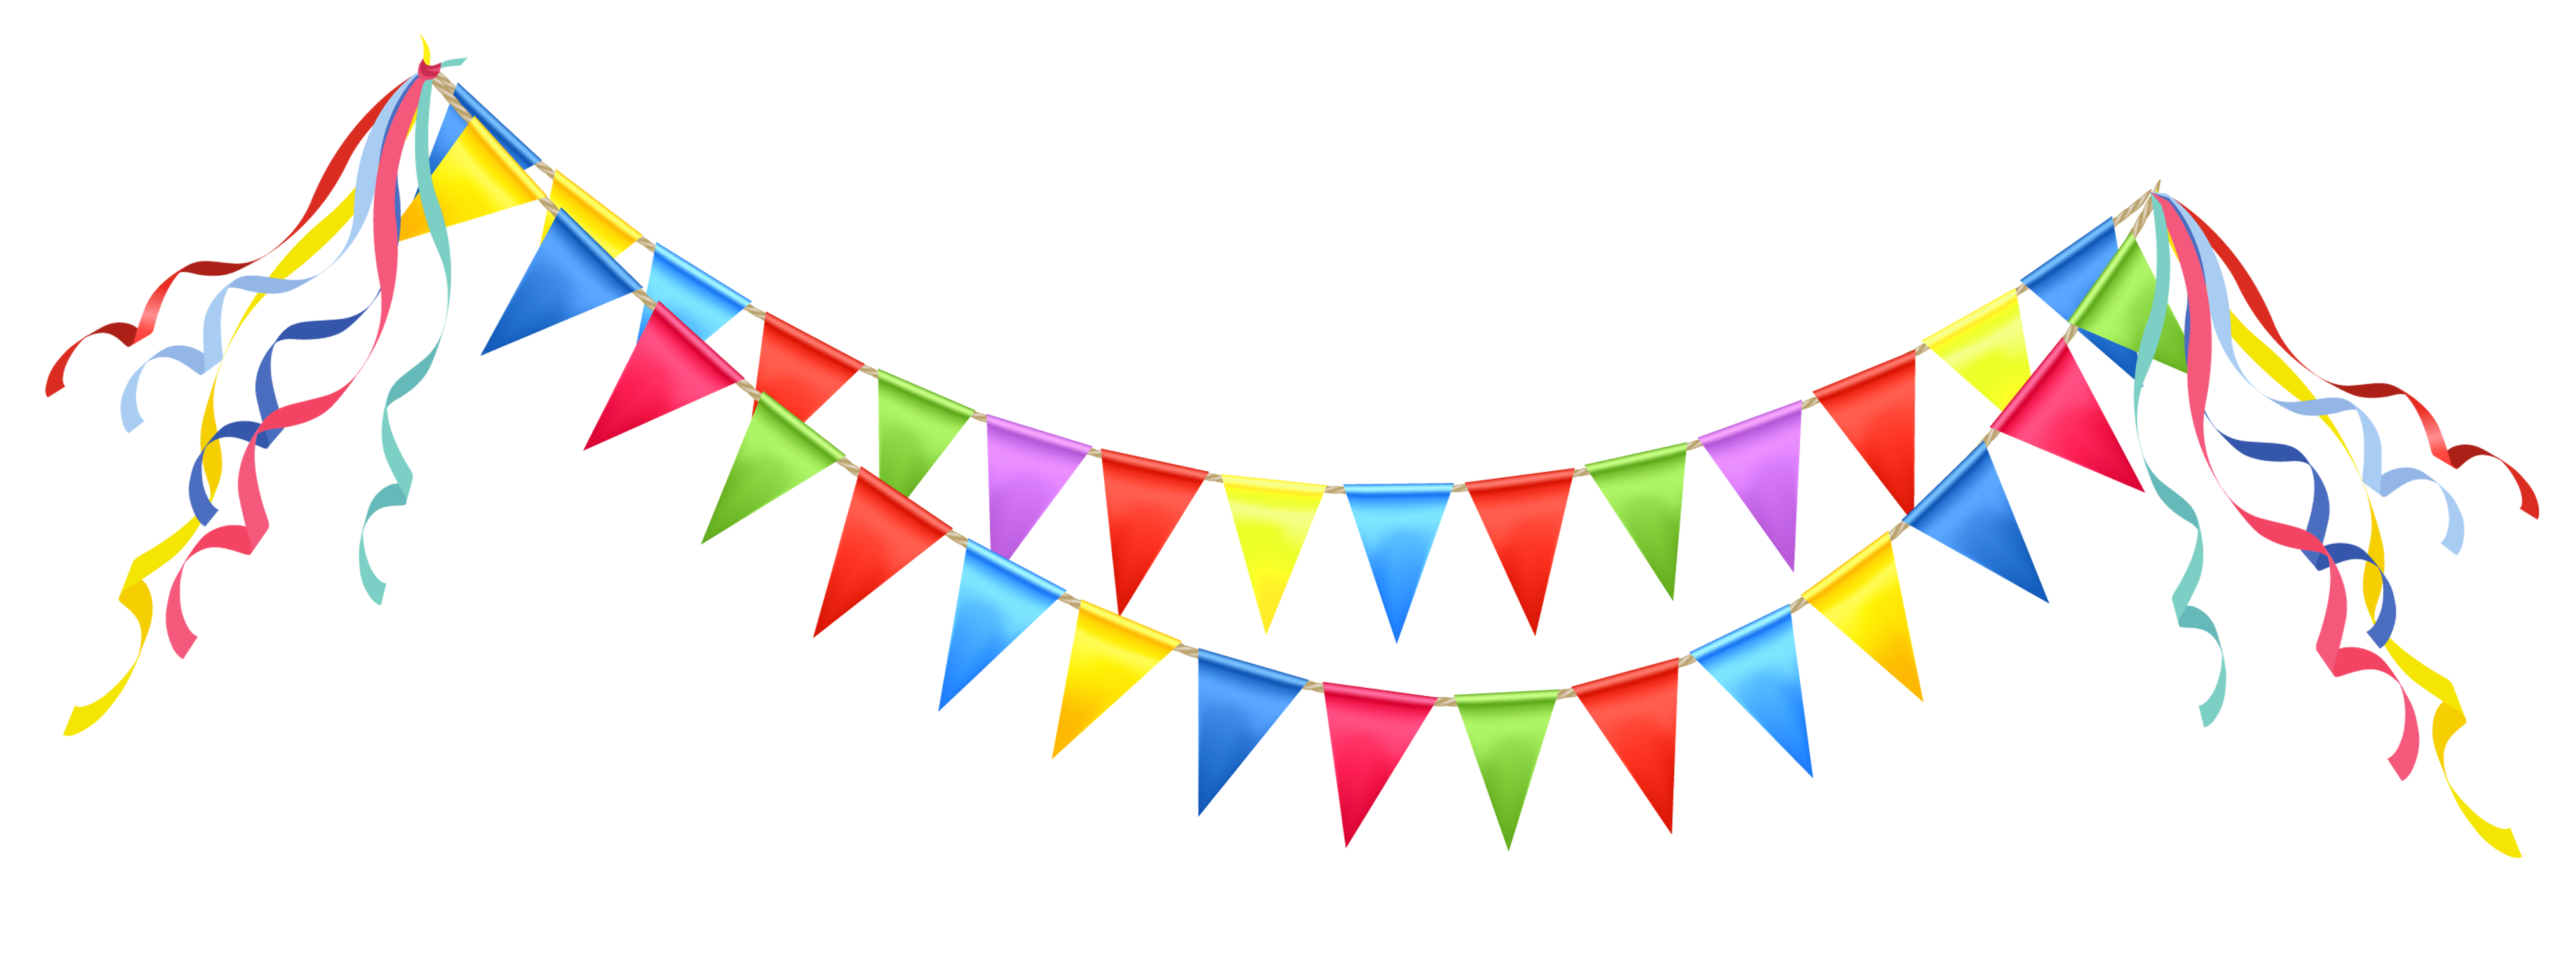 Free Party Clipart Free Clipart Graphics-Free party clipart free clipart graphics images and photos image 4-3